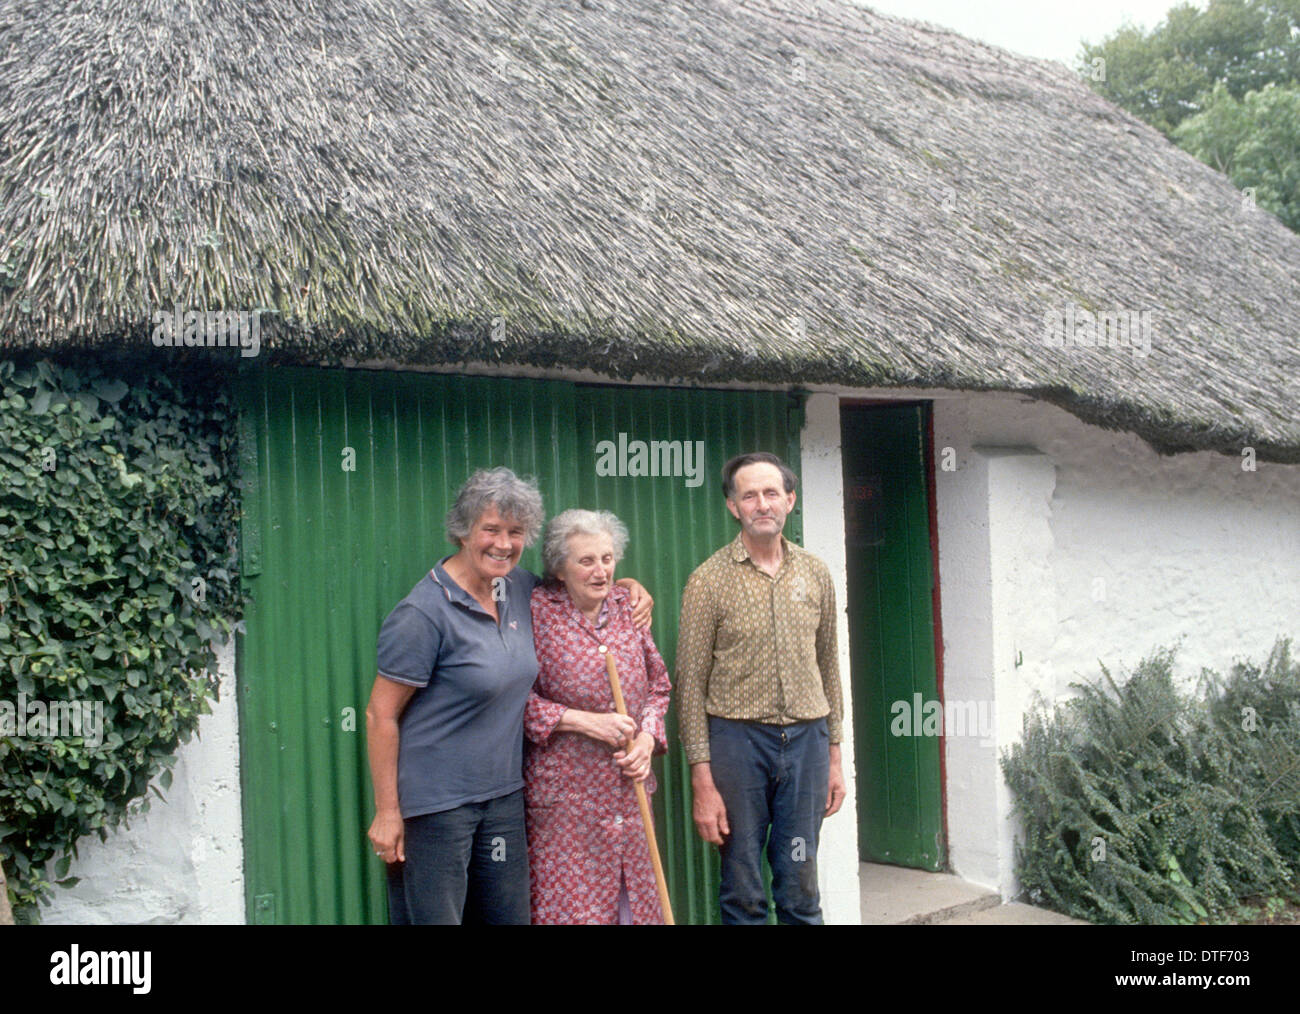 DISTINGUISHED TRAVEL WRITER DERVLA MURPHY WITH HER CLOSE NEIGHBOURS  NEAR TO HER LISMORE HOME IN CO WATERFIRD IRELAND - Stock Image